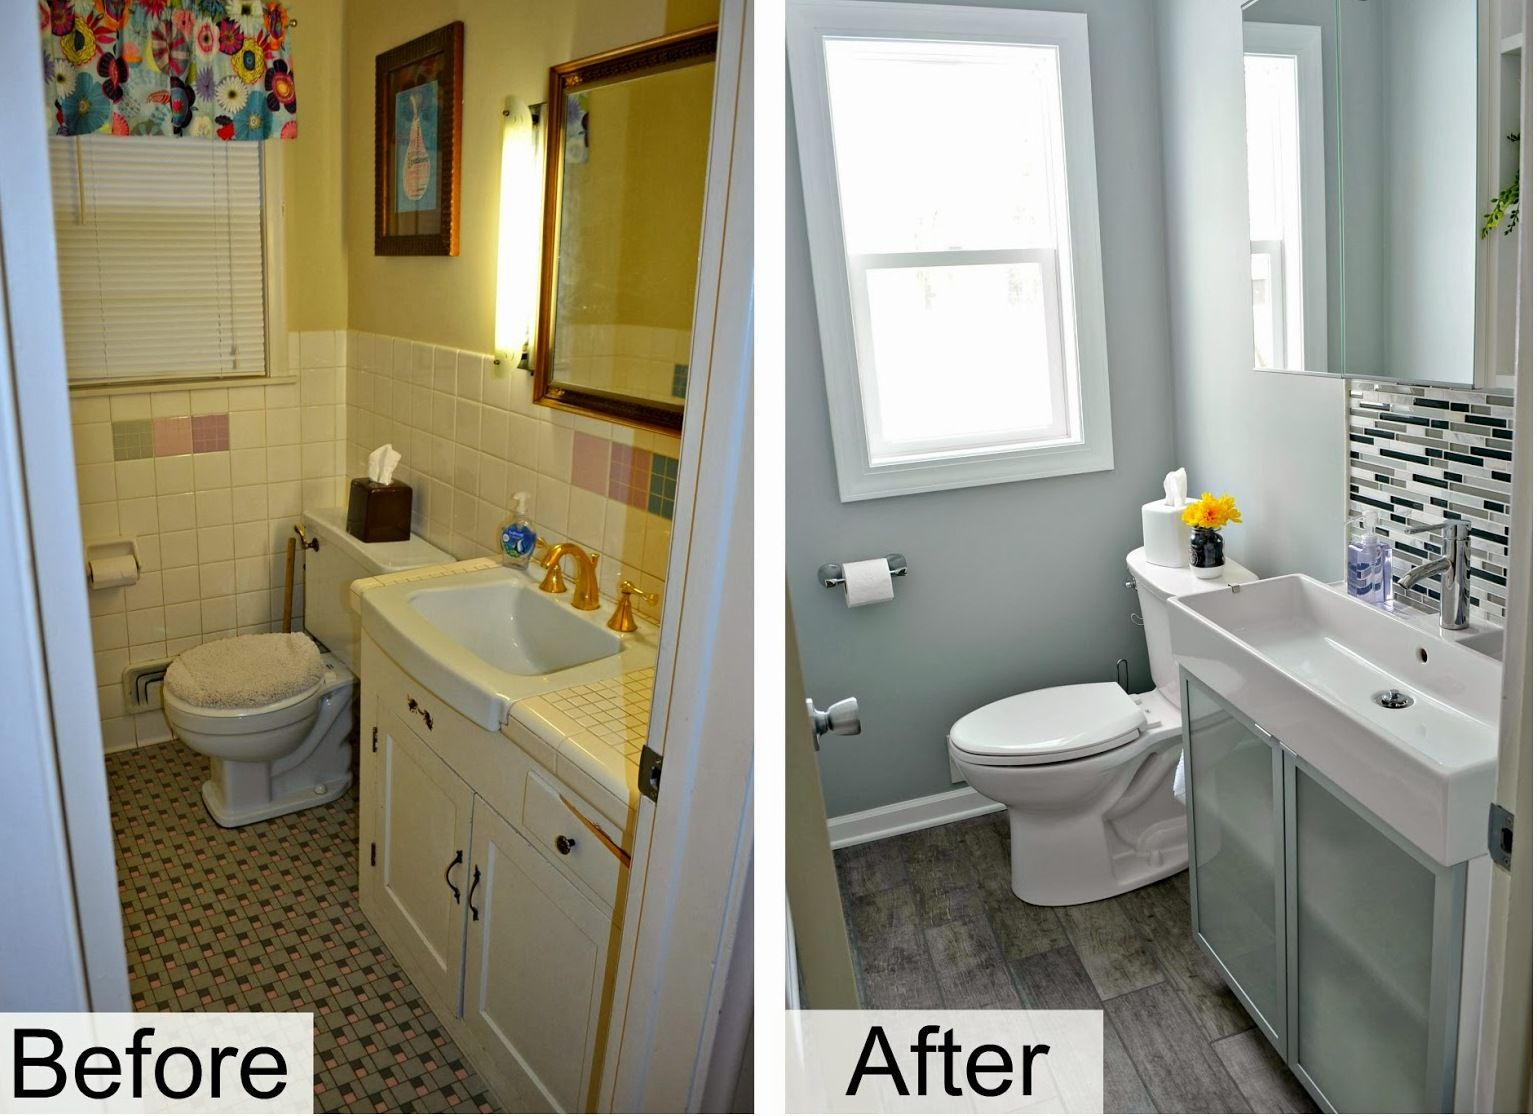 diy bathroom remodel ideas for average people - Cost Of Average Bathroom Remodel